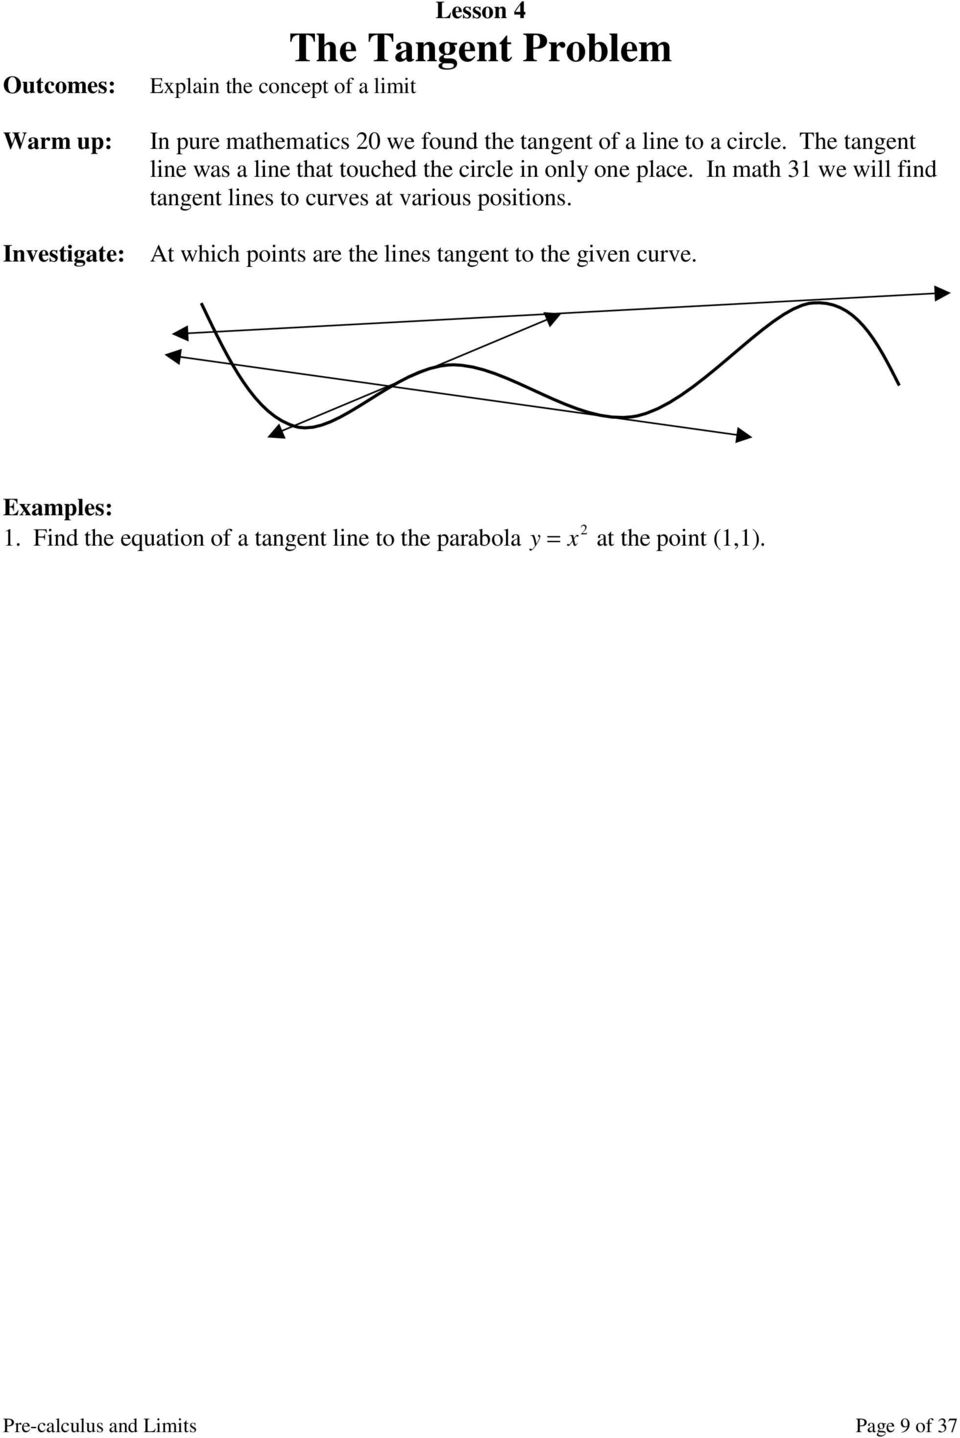 In math 31 we will find tangent lines to curves at various positions.